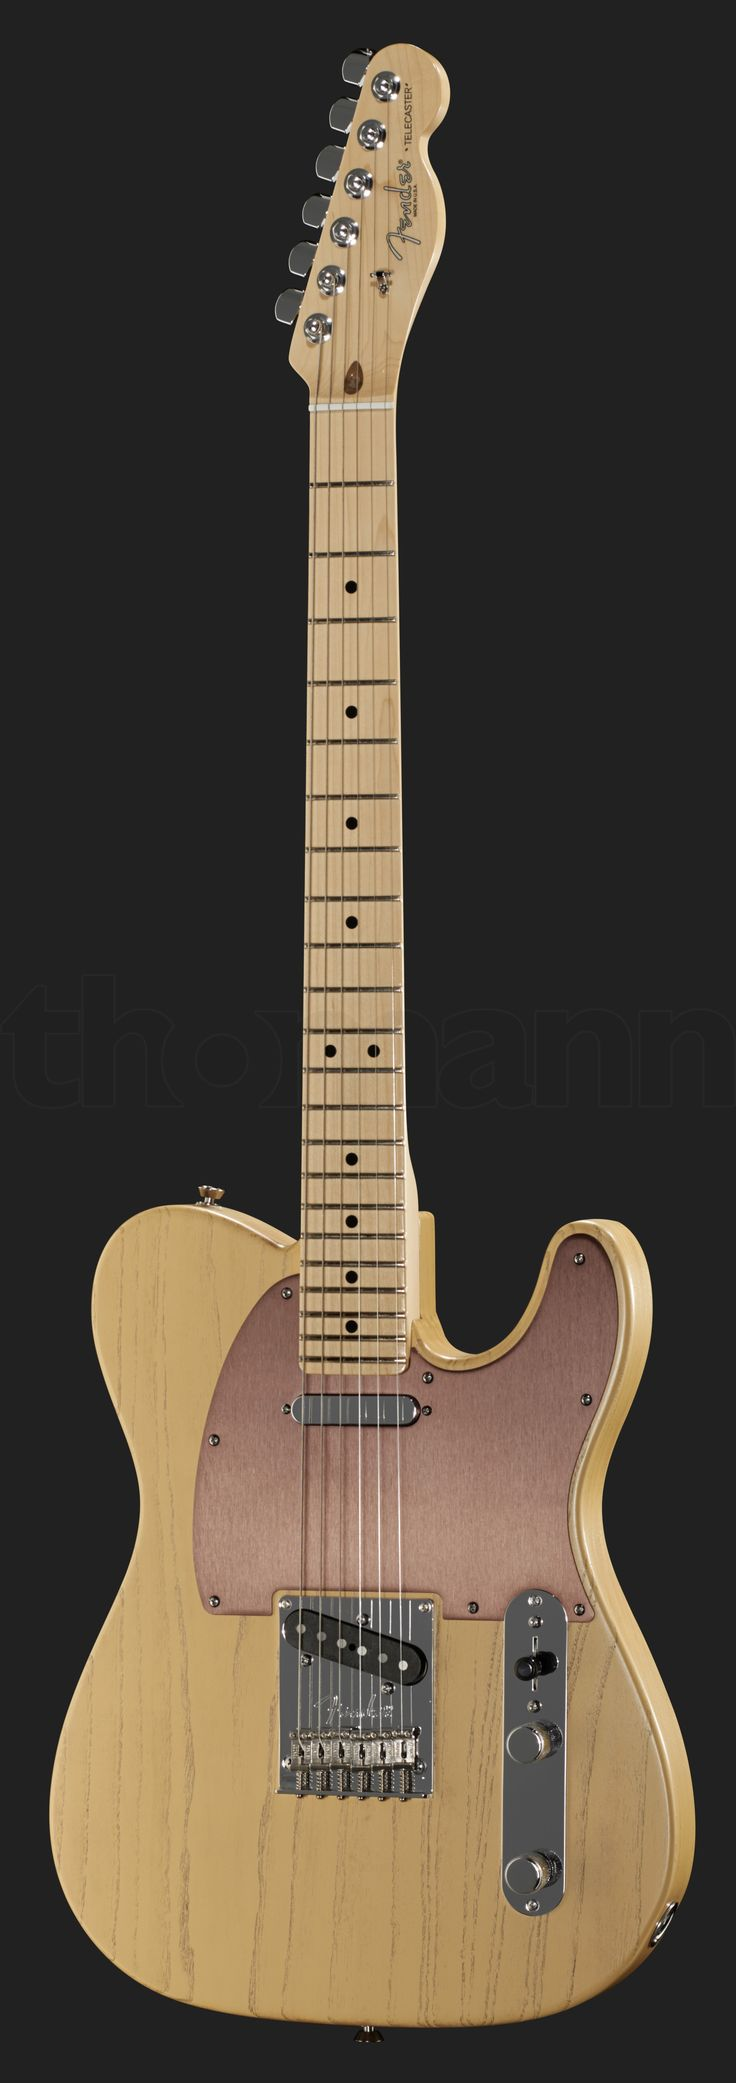 Fender American Telecaster, Rustic Ash Butterscotch Blonde, FSR special edition